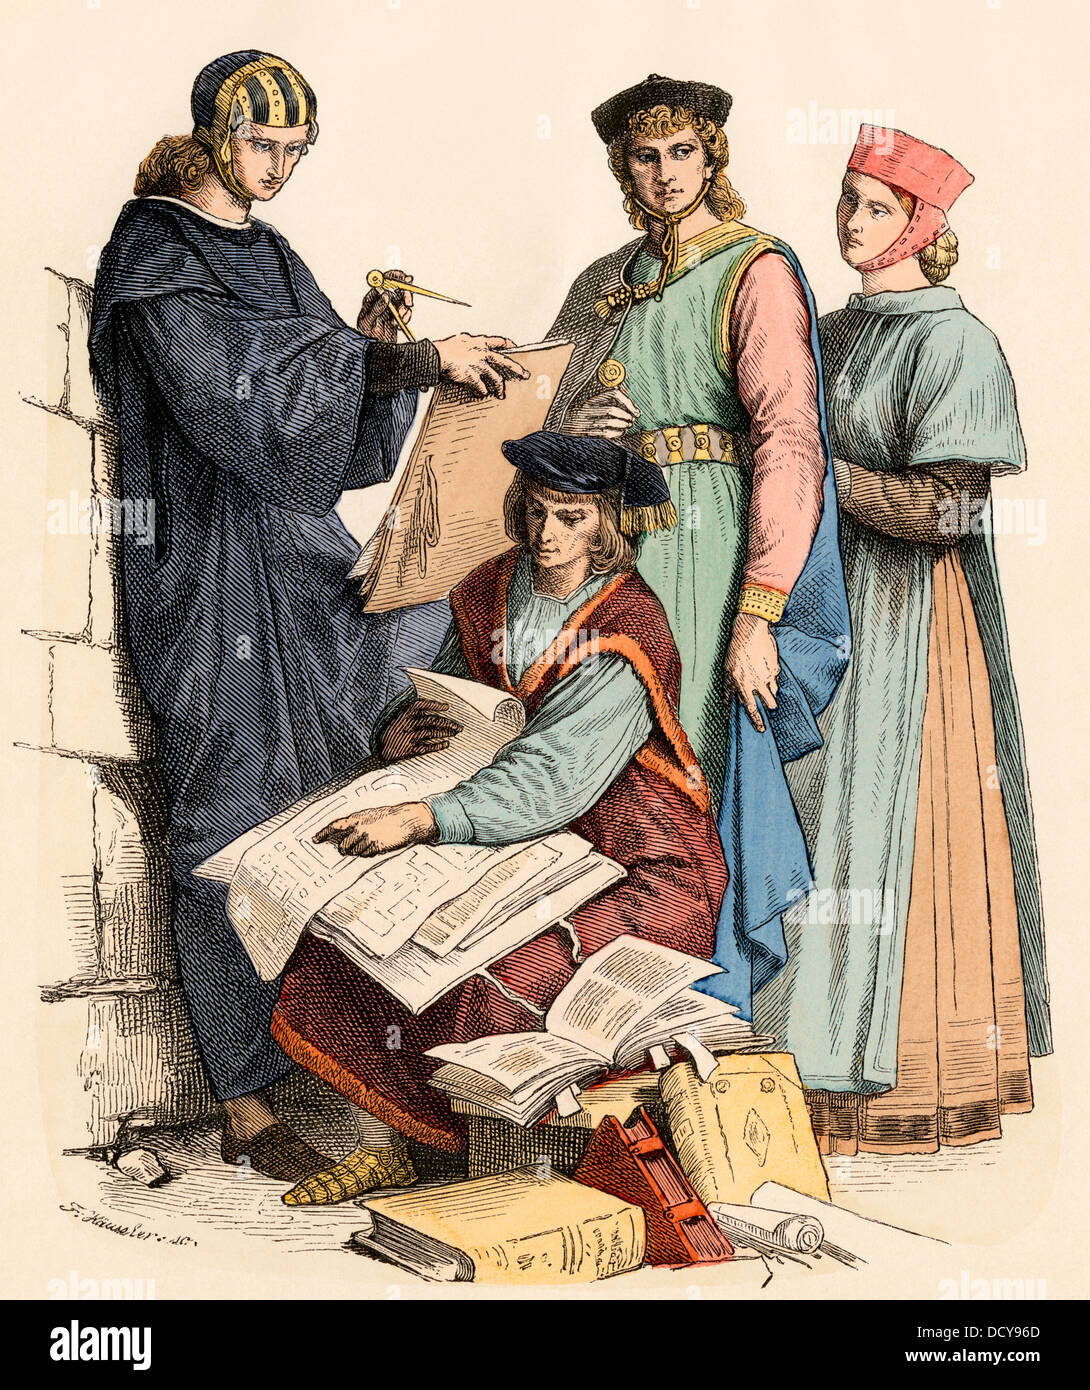 Italian scholar and artist in the 13th century. Hand-colored print - Stock Image